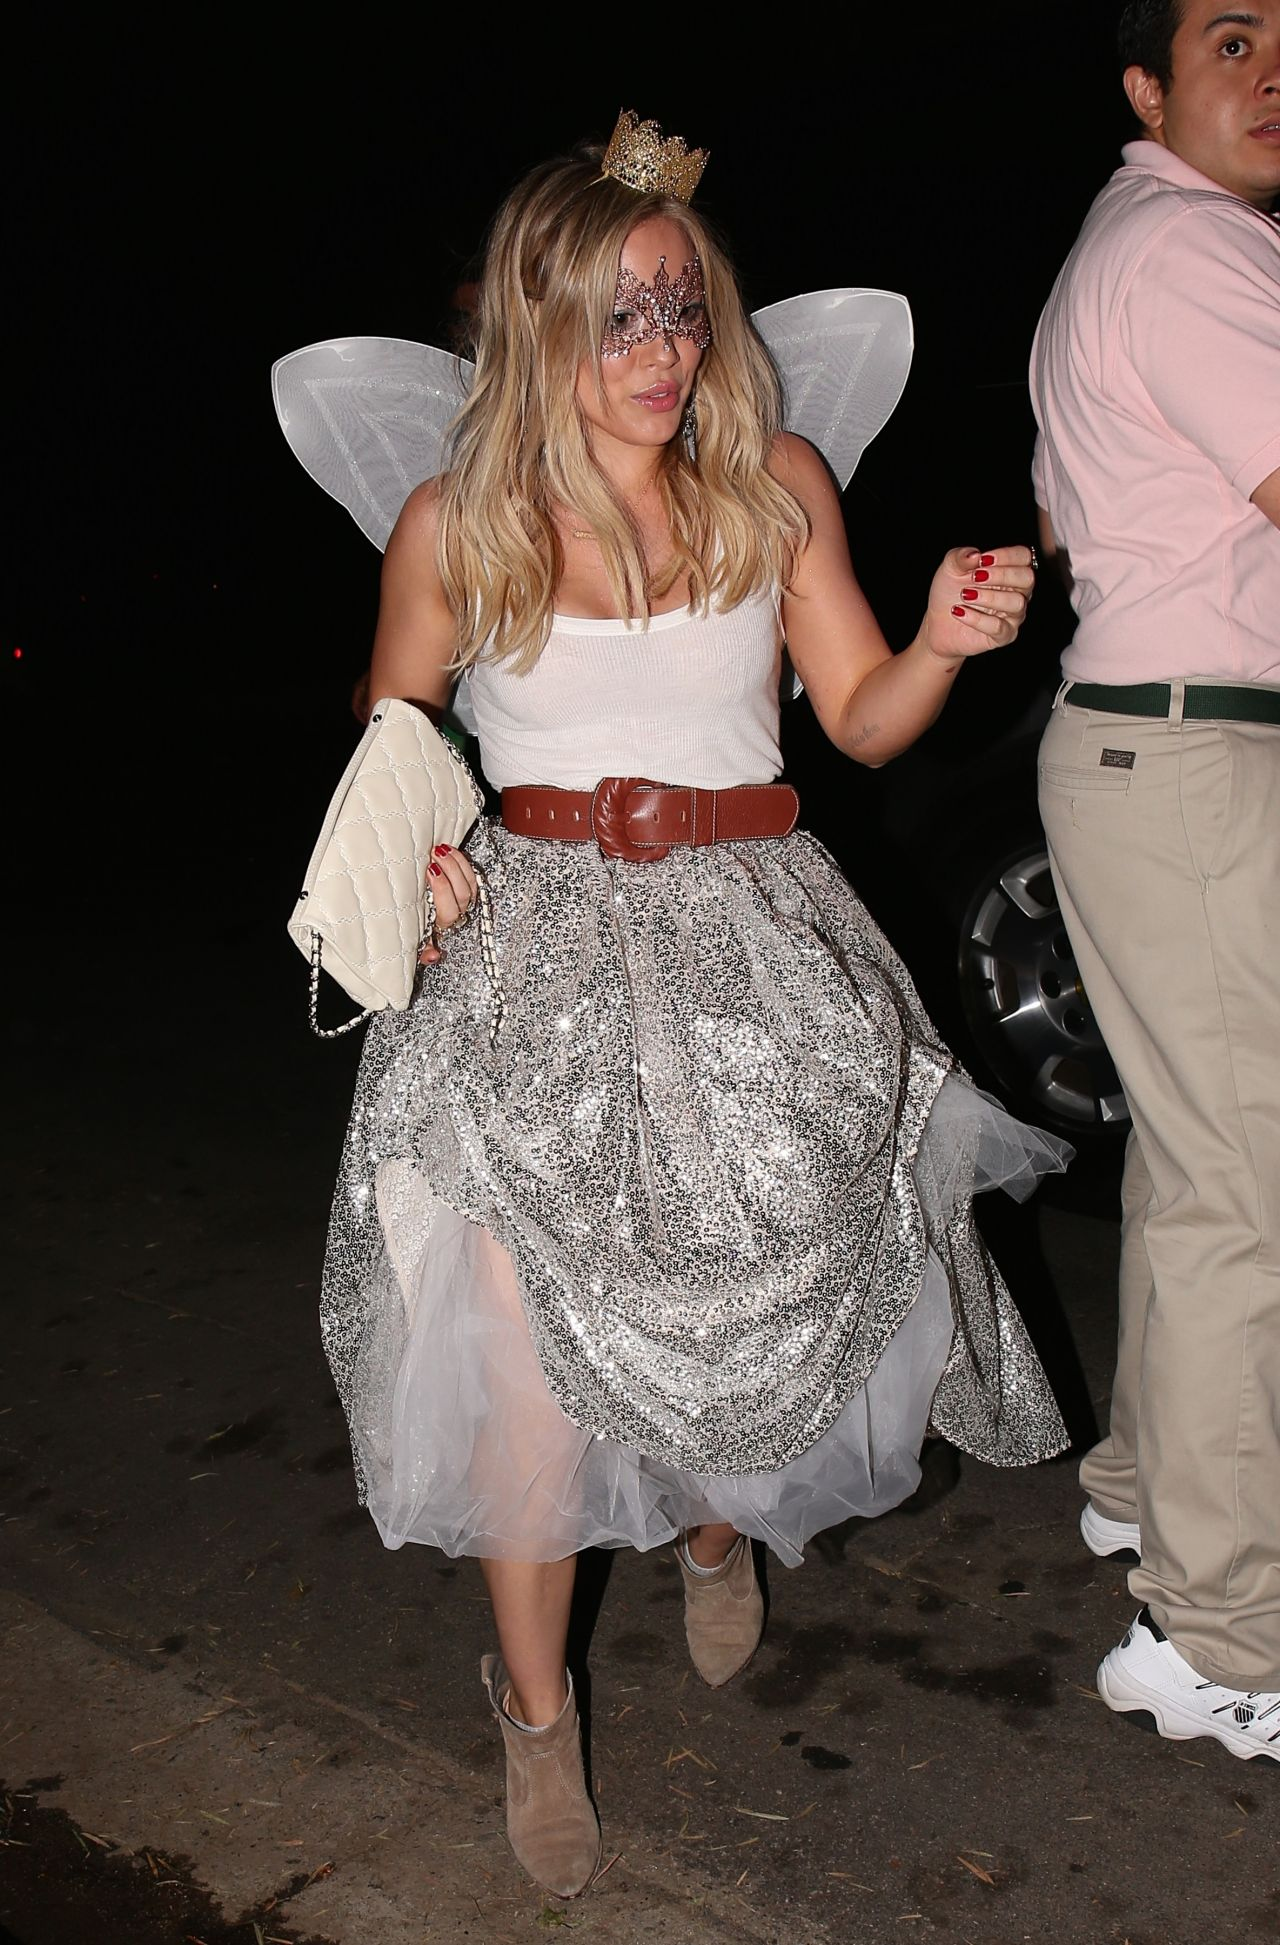 Hilary Duff at Halloween Party in Beverly Hills - October 2014